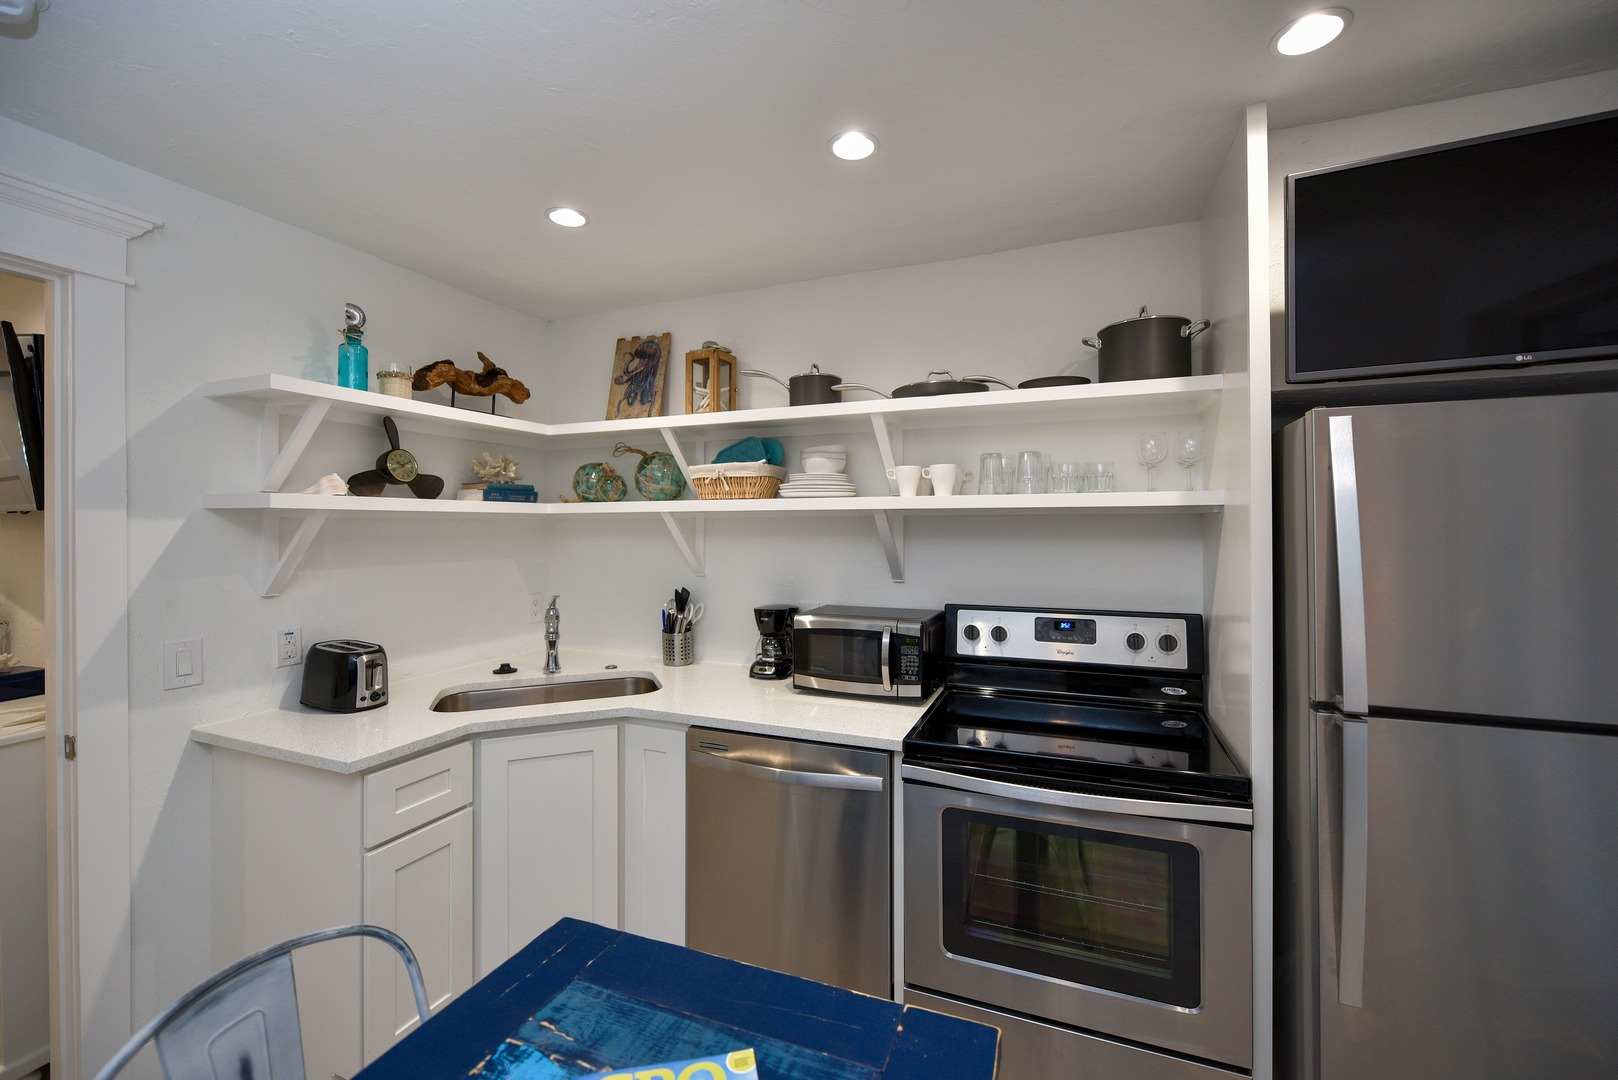 Stainless Steel Appliances and Supplies